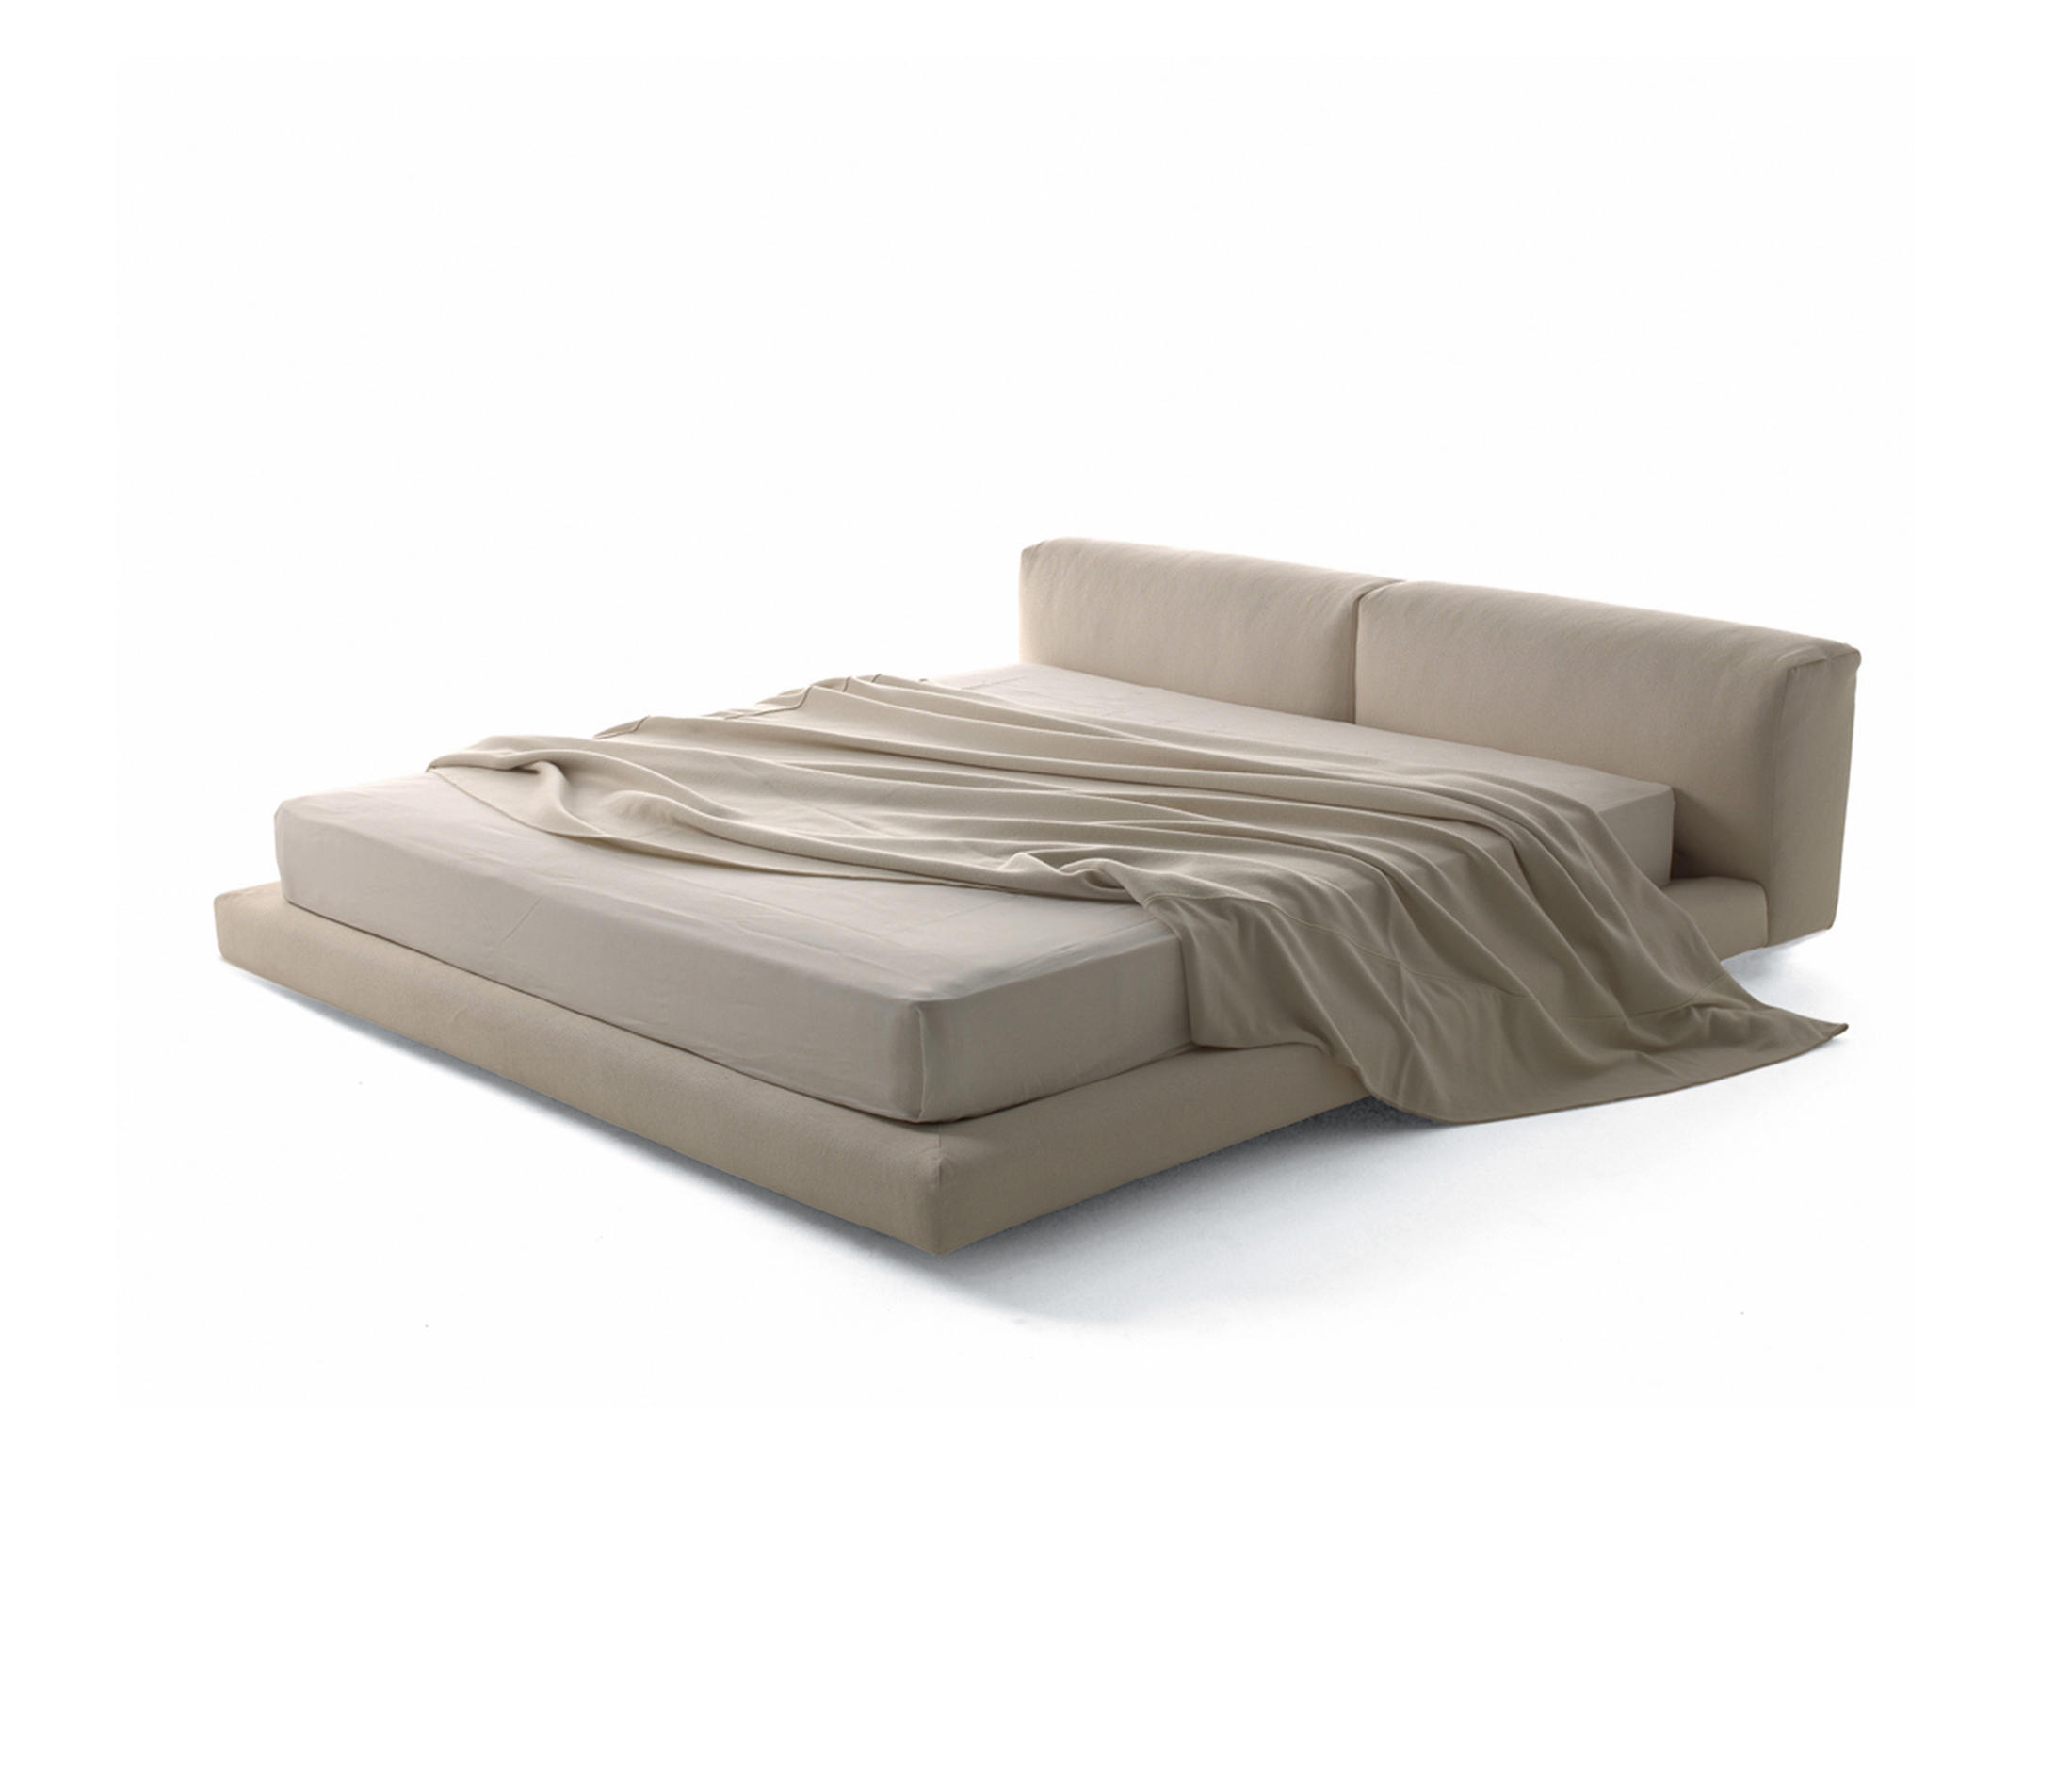 Softwall bed double beds from living divani architonic for Living divani softwall